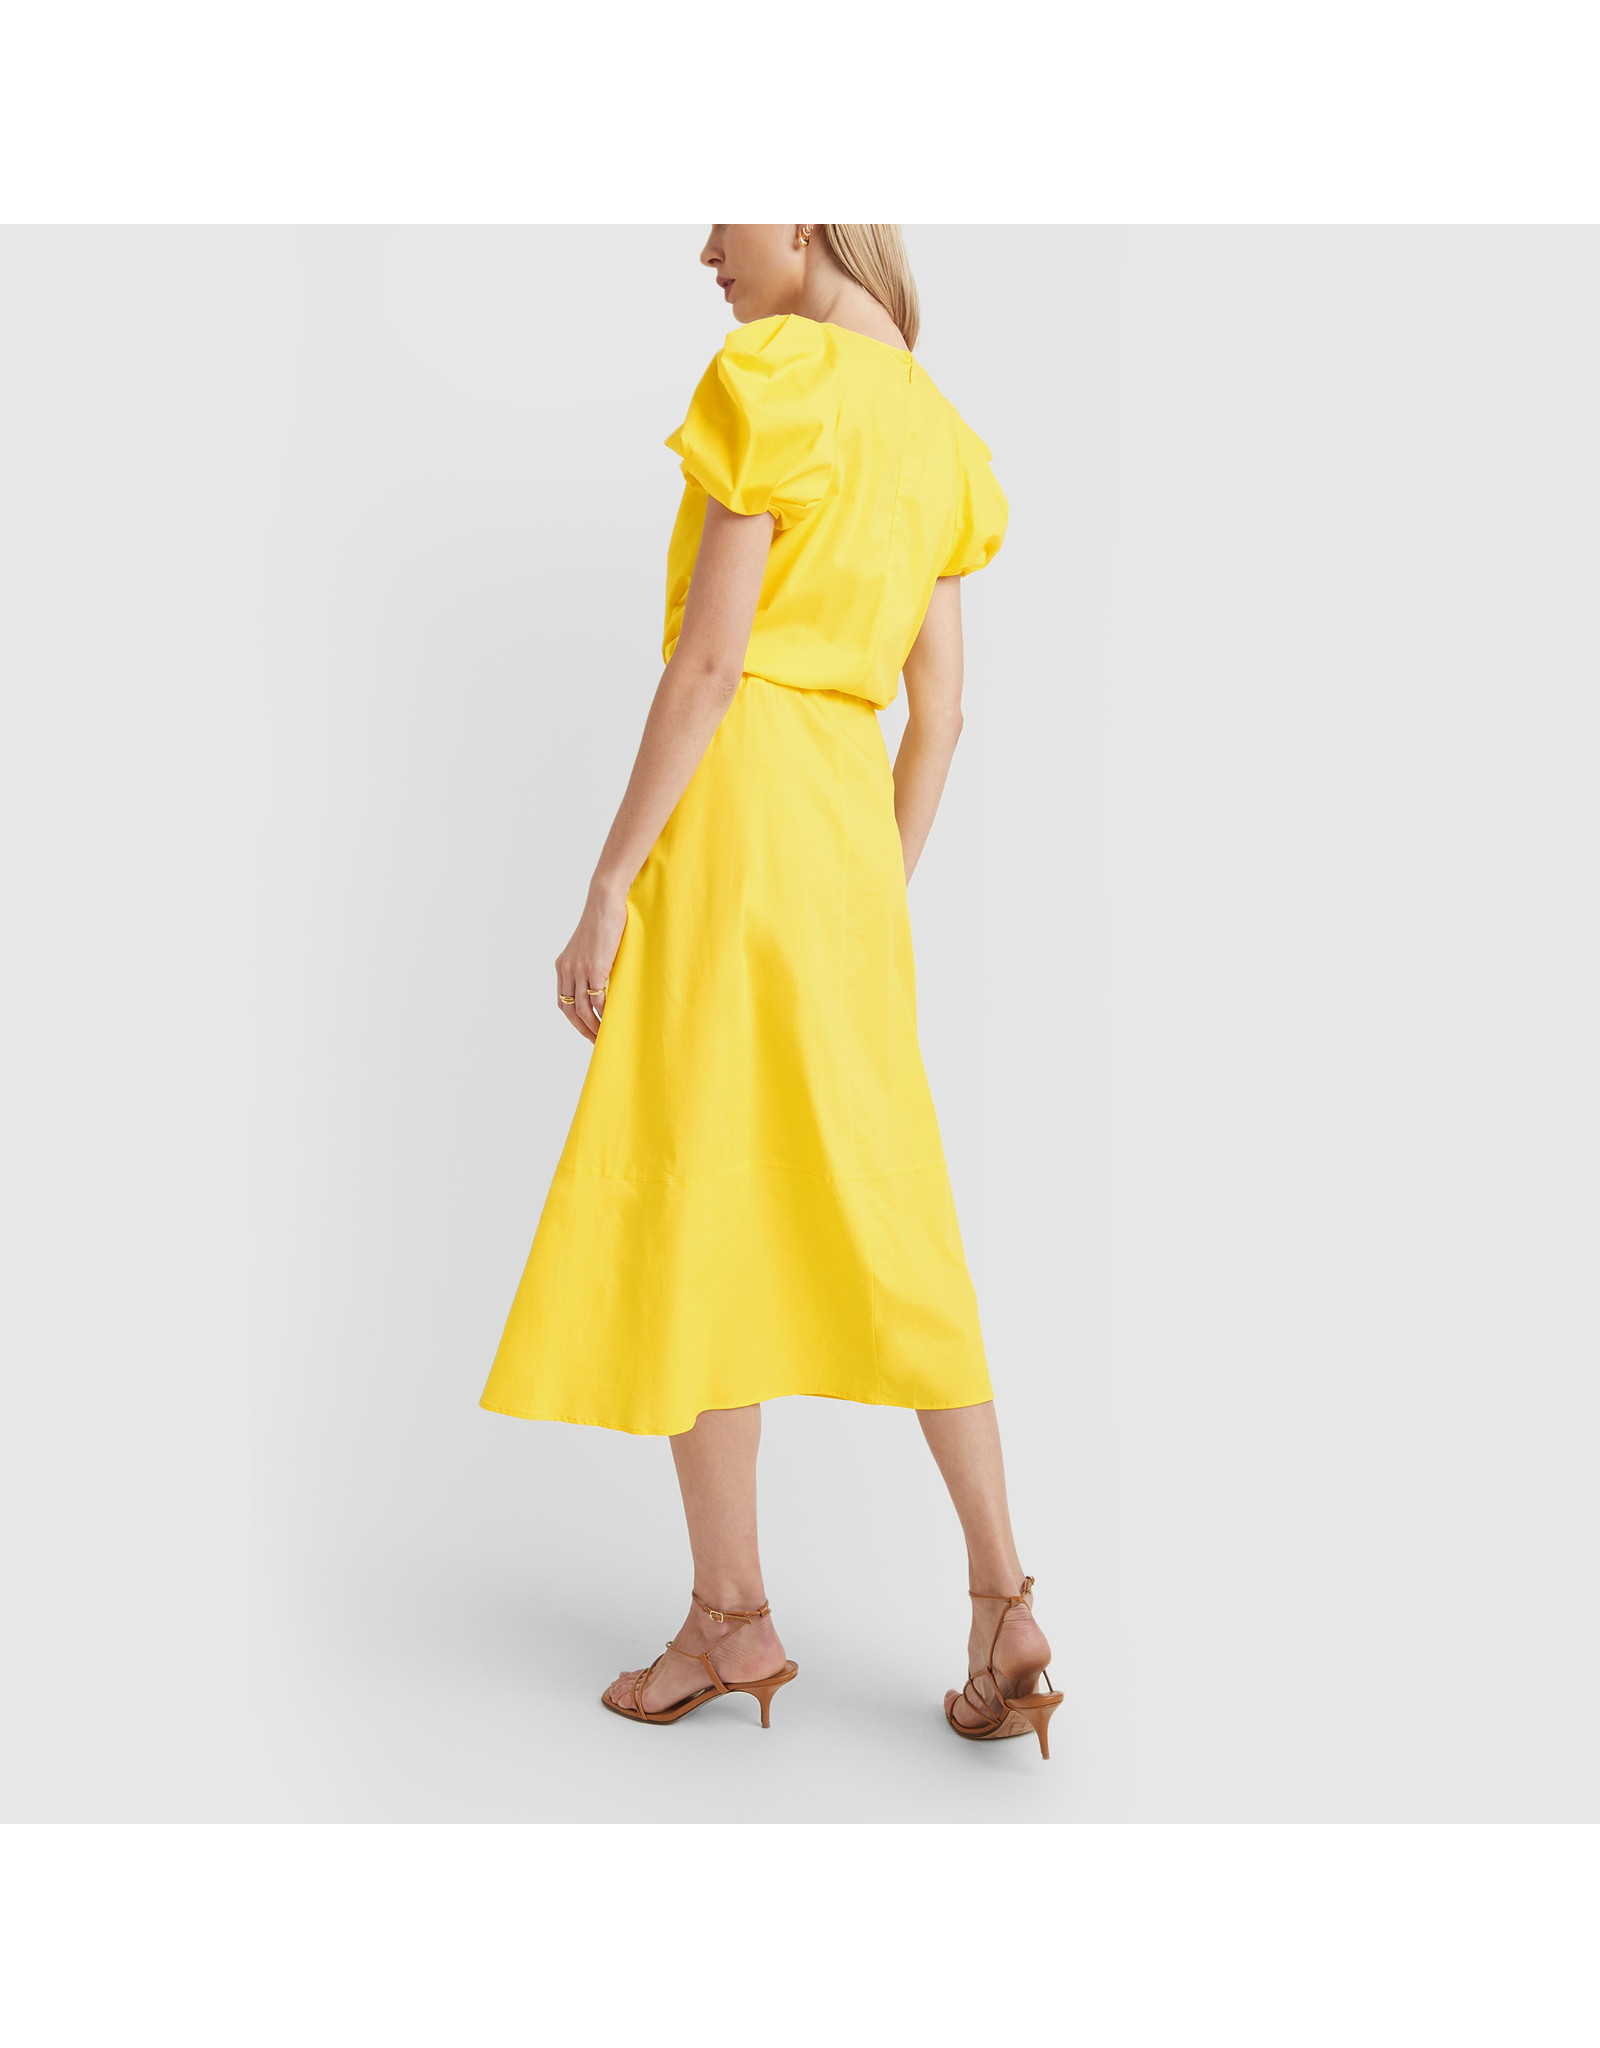 G. Label Zelda Rounded-Sleeve Drawstring Dress (Color: Yellow, Size: 6)